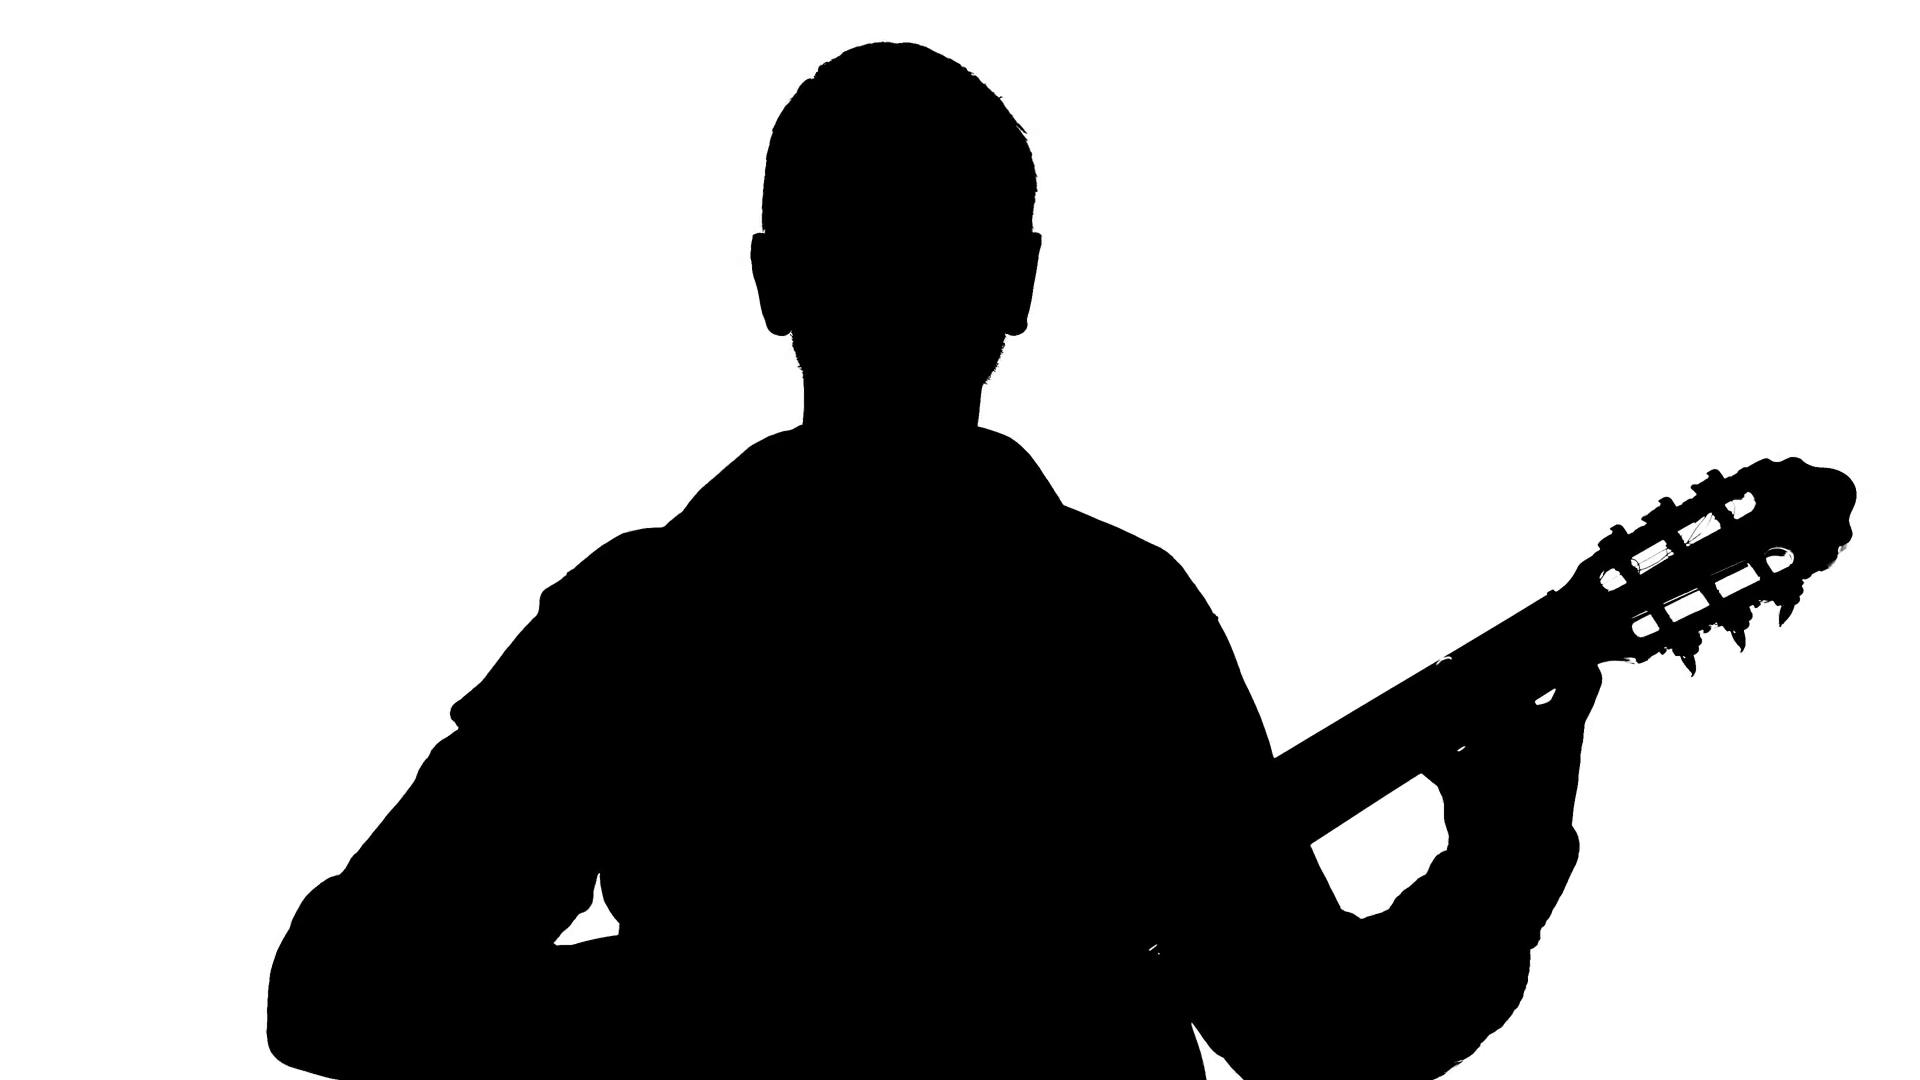 man with guitar silhouette silhouette of a man playing a guitar vector image guitar silhouette man with